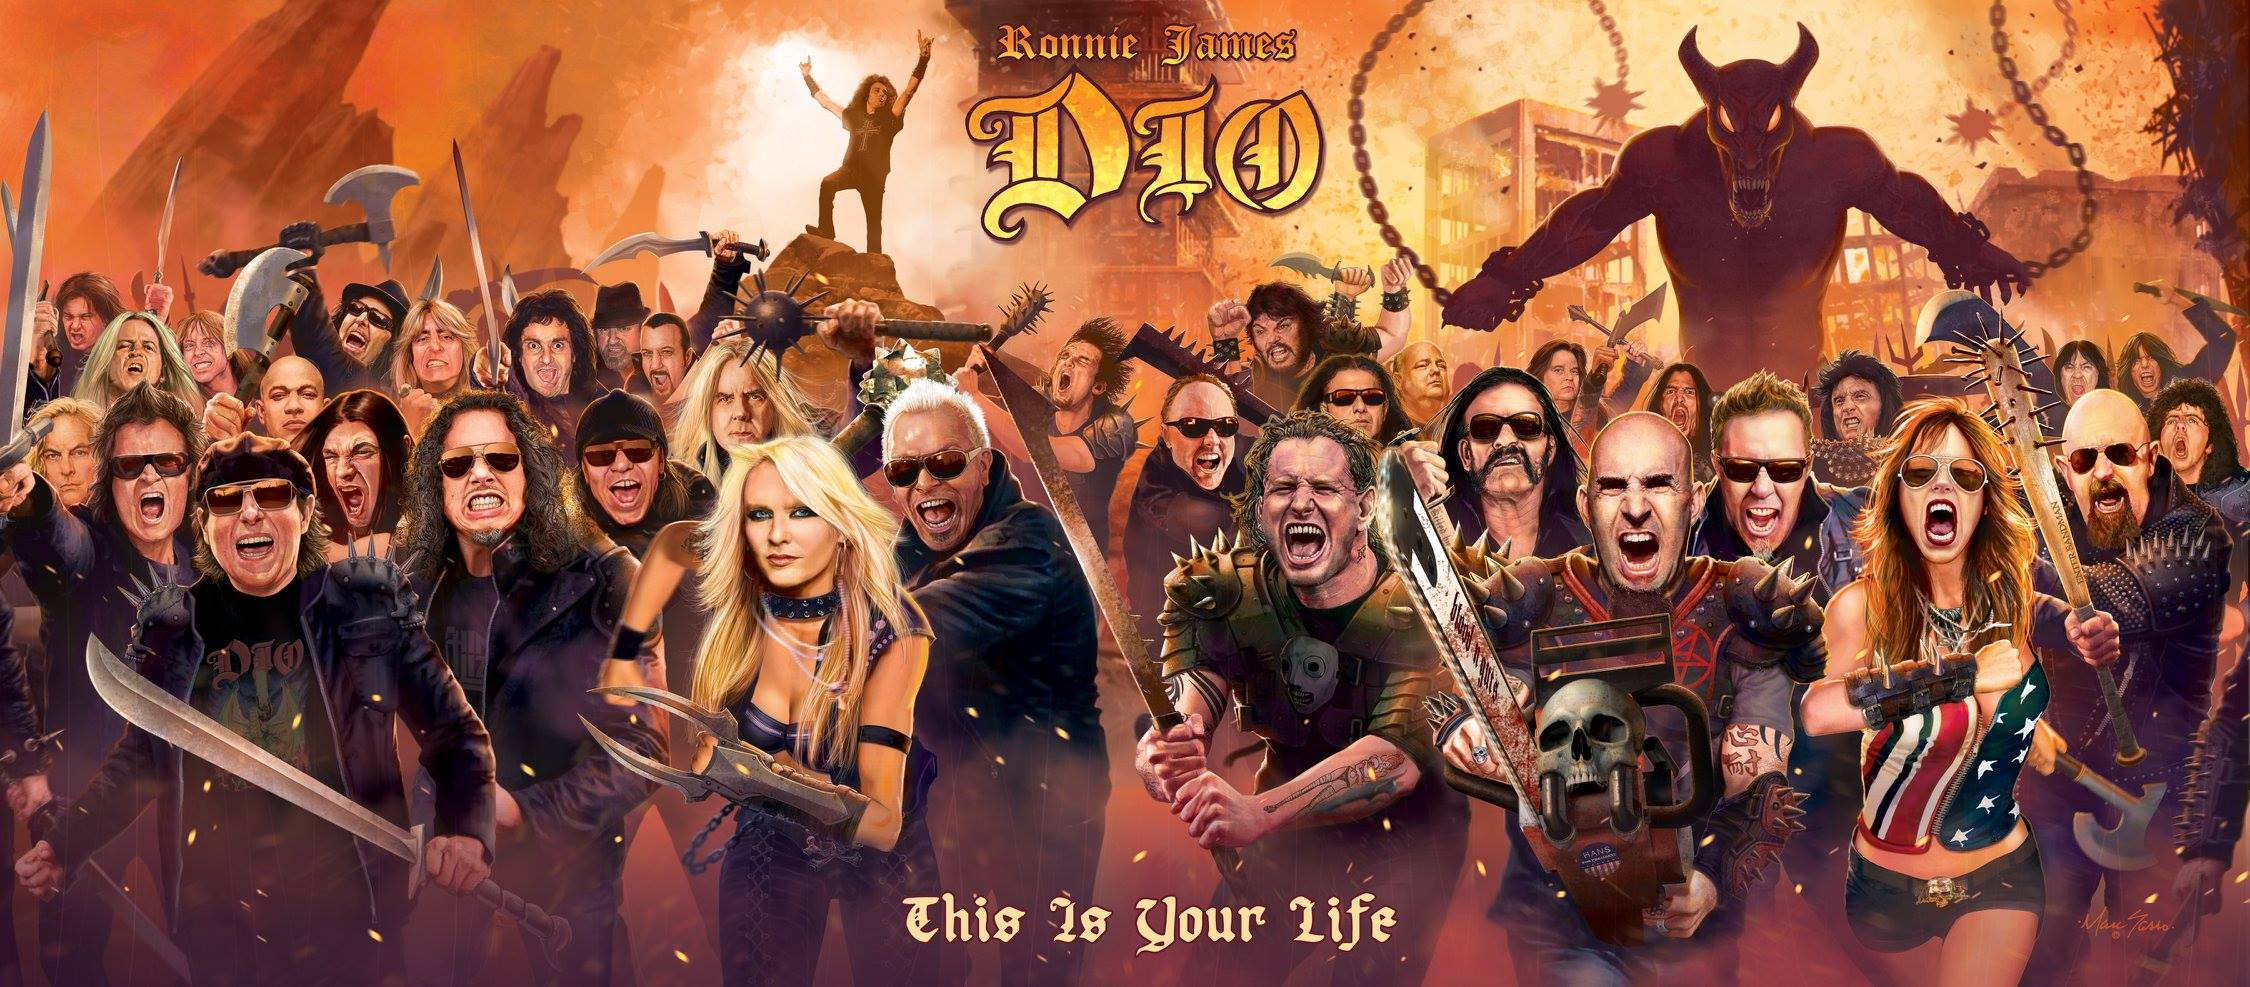 ronnie-james-dio-this-is-your-life.jpg